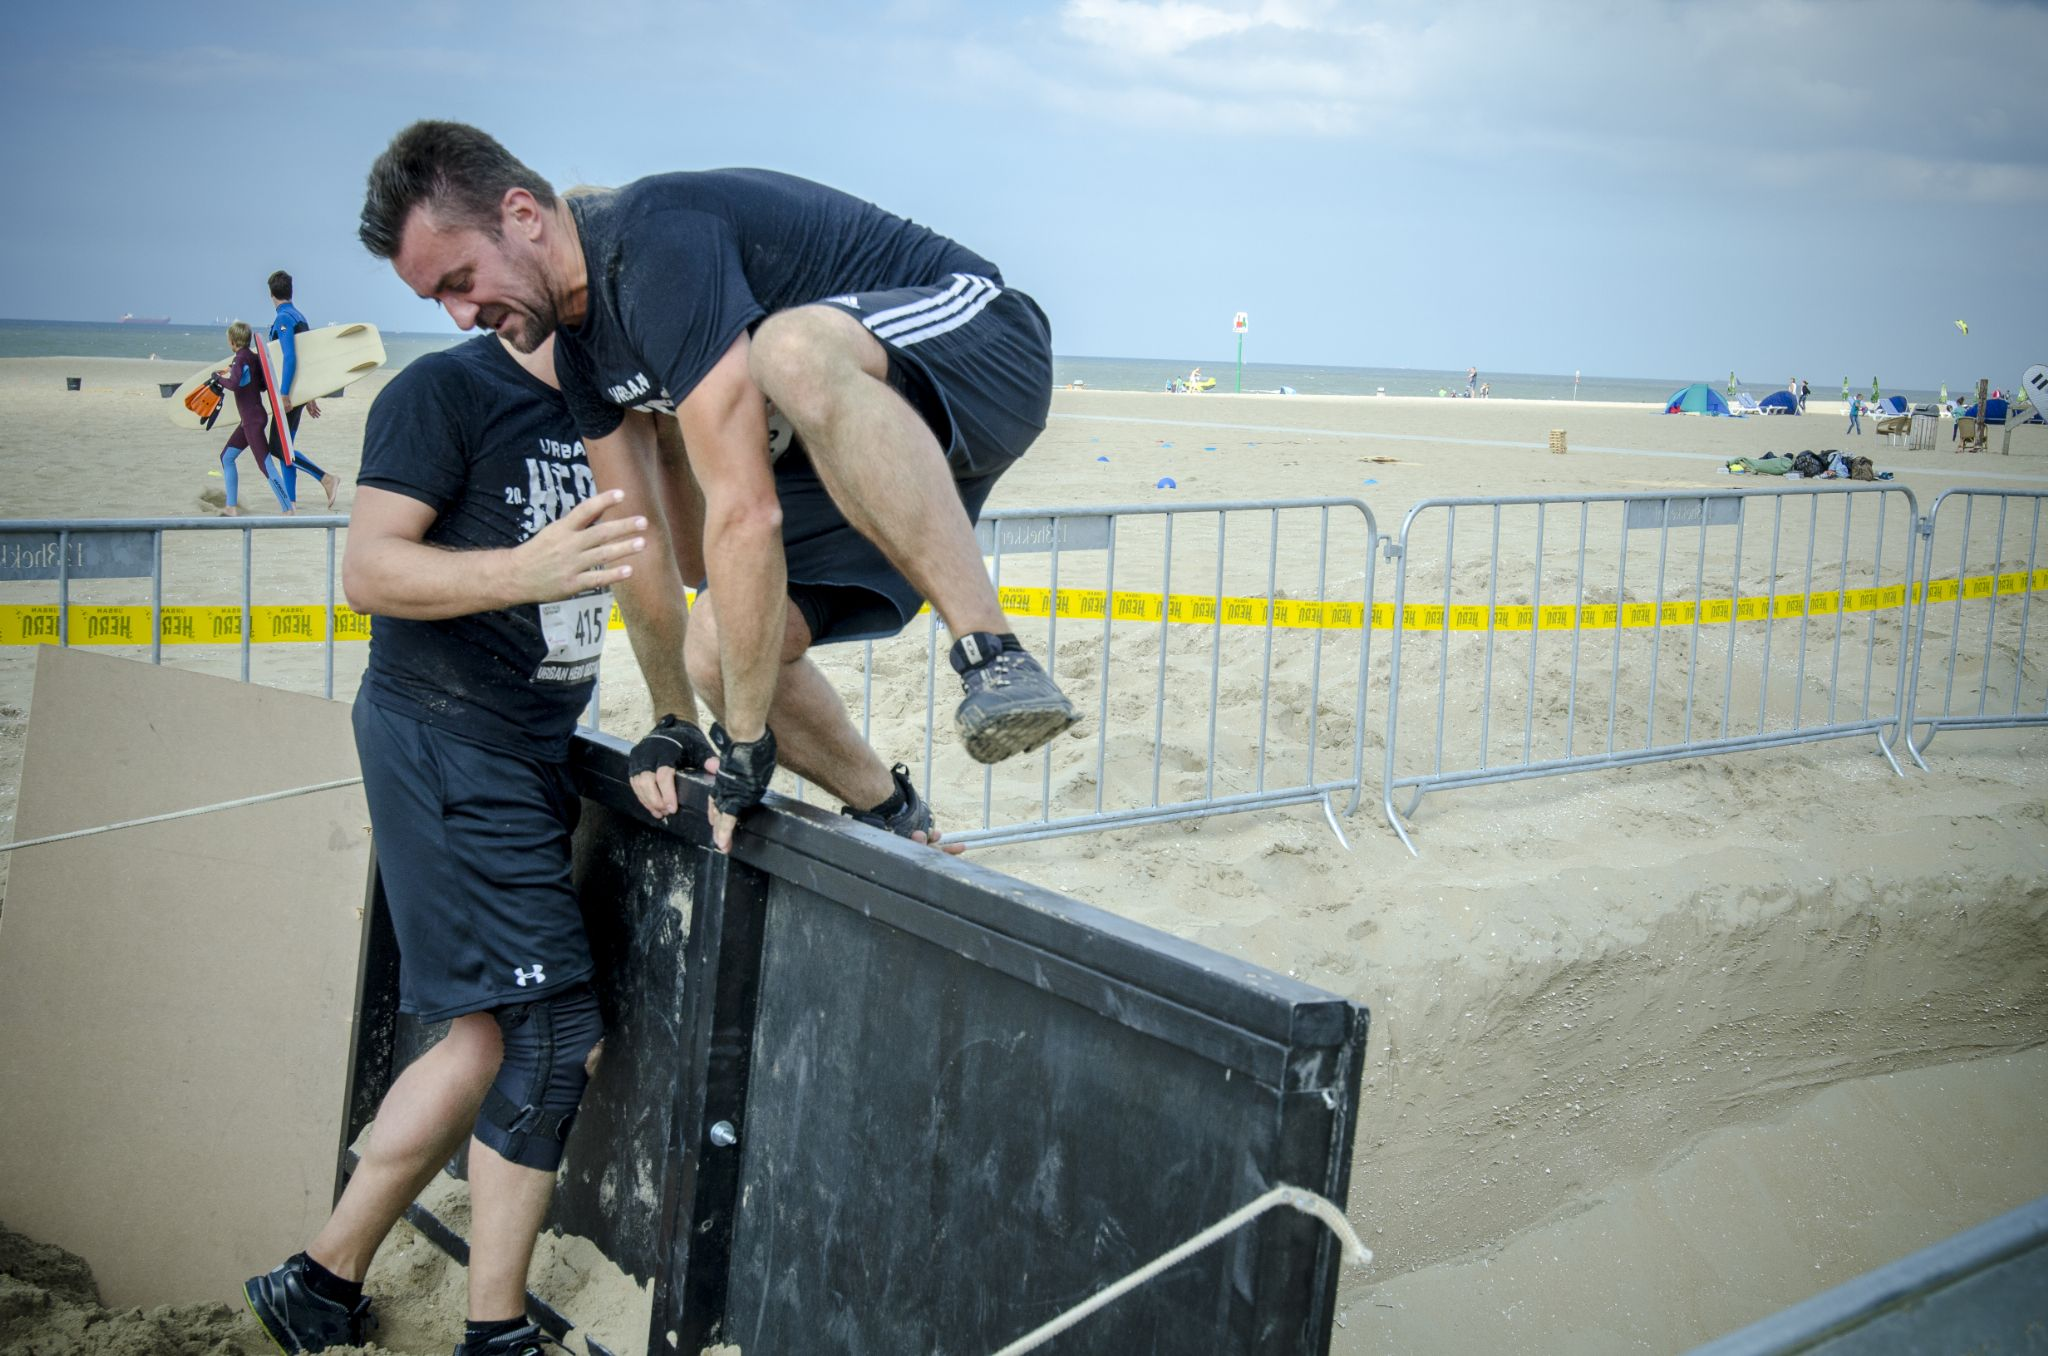 Urban Hero Obstacle Run Scheveningen  by ricsas90